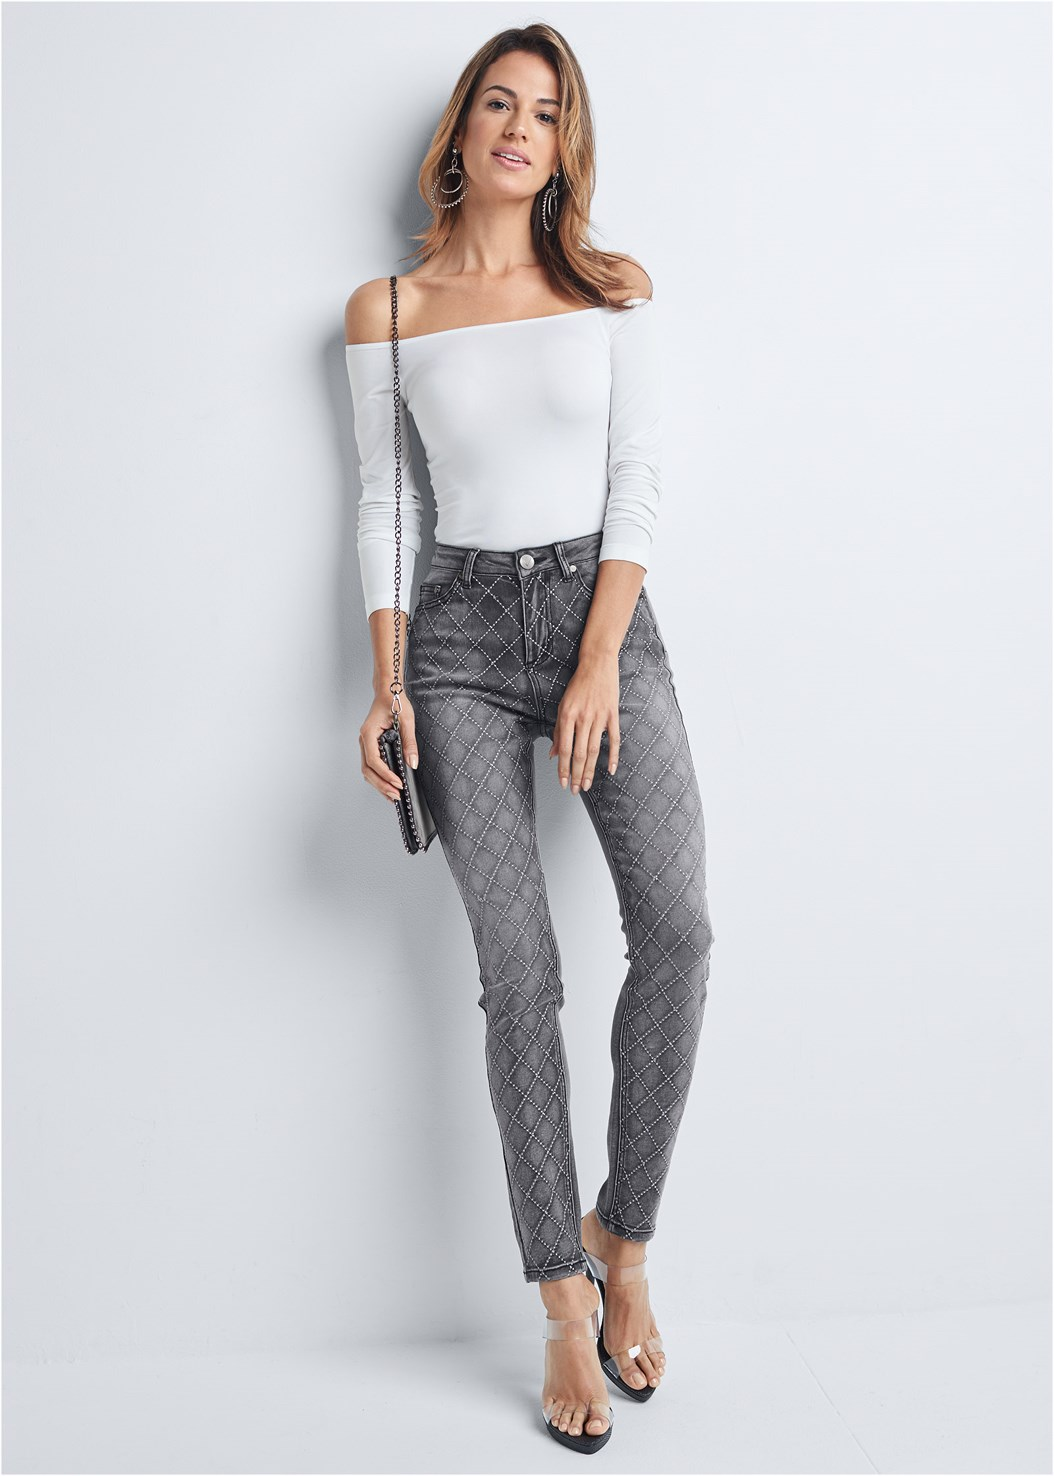 Embellished Skinny Jeans,Off The Shoulder Top,Mid Rise Color Skinny Jeans,Lucite Strap Heels,Studded Matte Hoops,Studded Chain Strap Bag